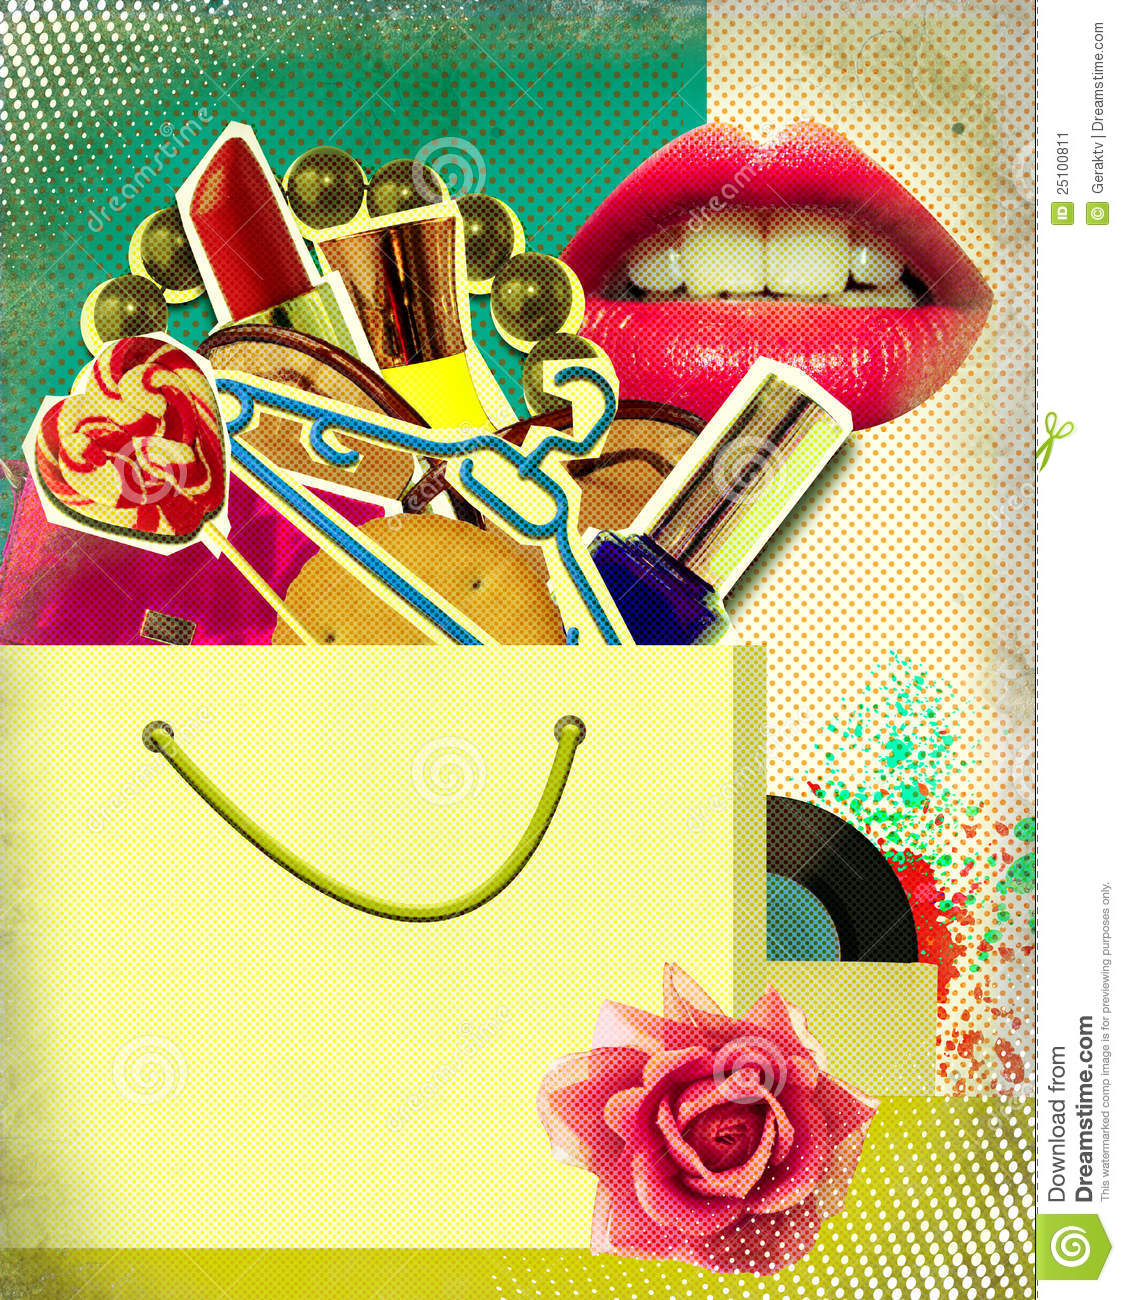 shopping bag on retro poster pop art stock illustration image 25100811. Black Bedroom Furniture Sets. Home Design Ideas